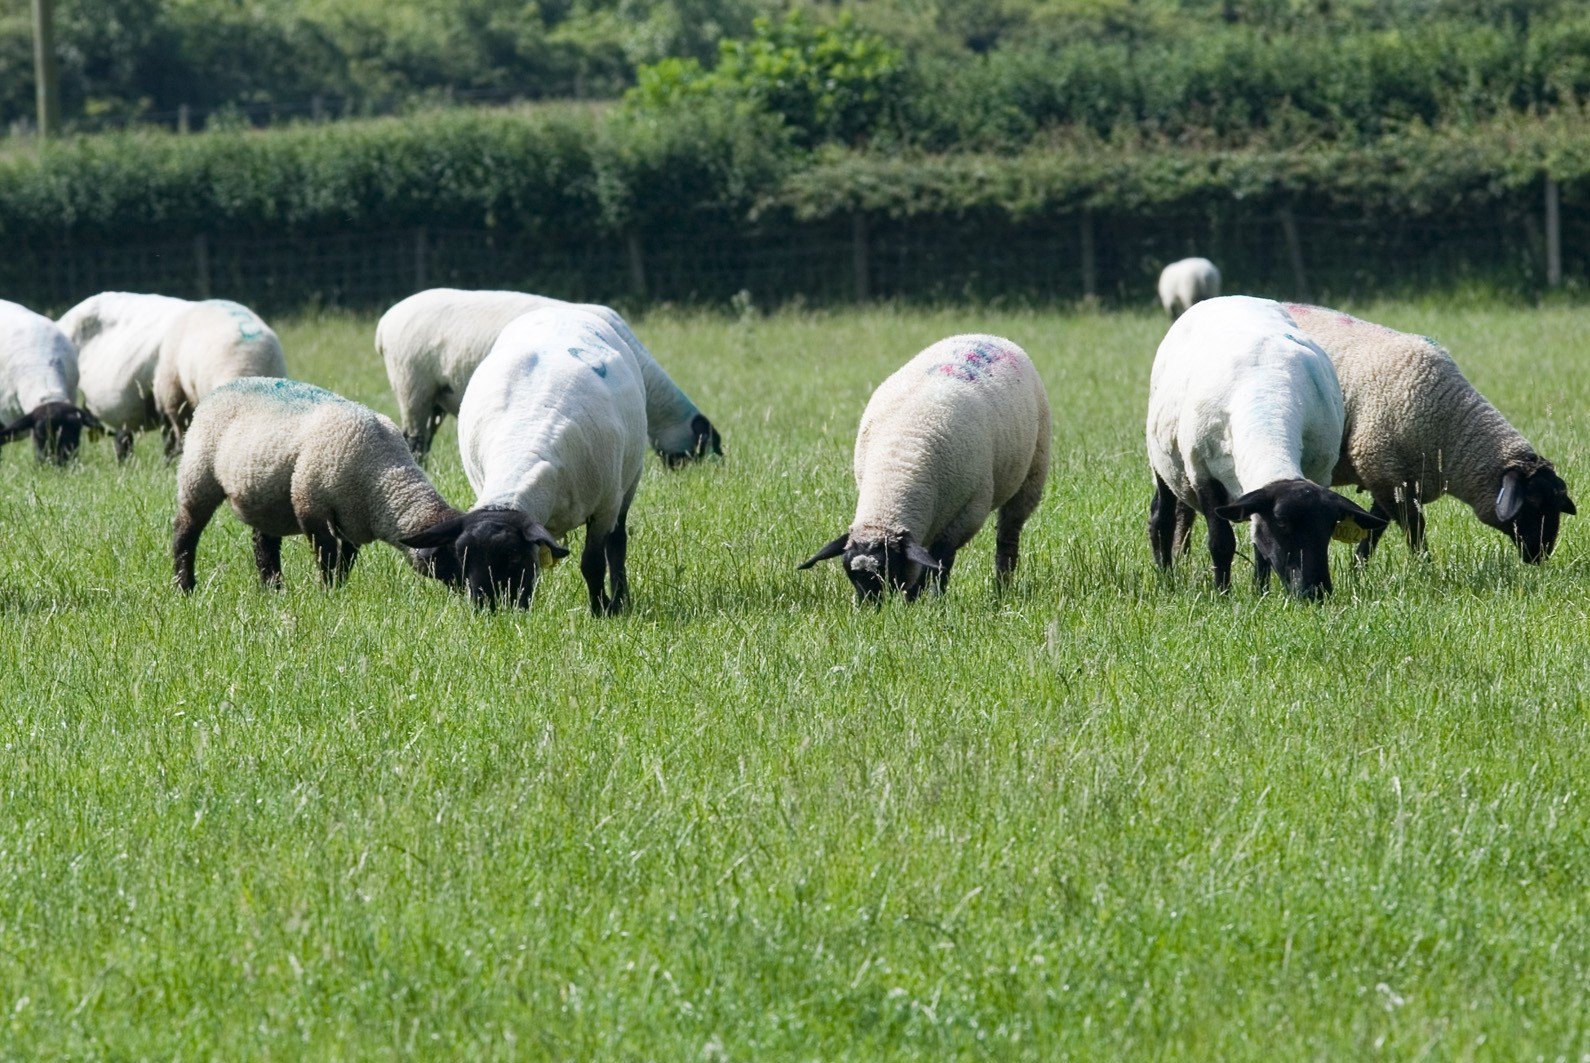 Controlling parasite diseases is vital for the health, welfare and economic sustainability of the UK sheep industry